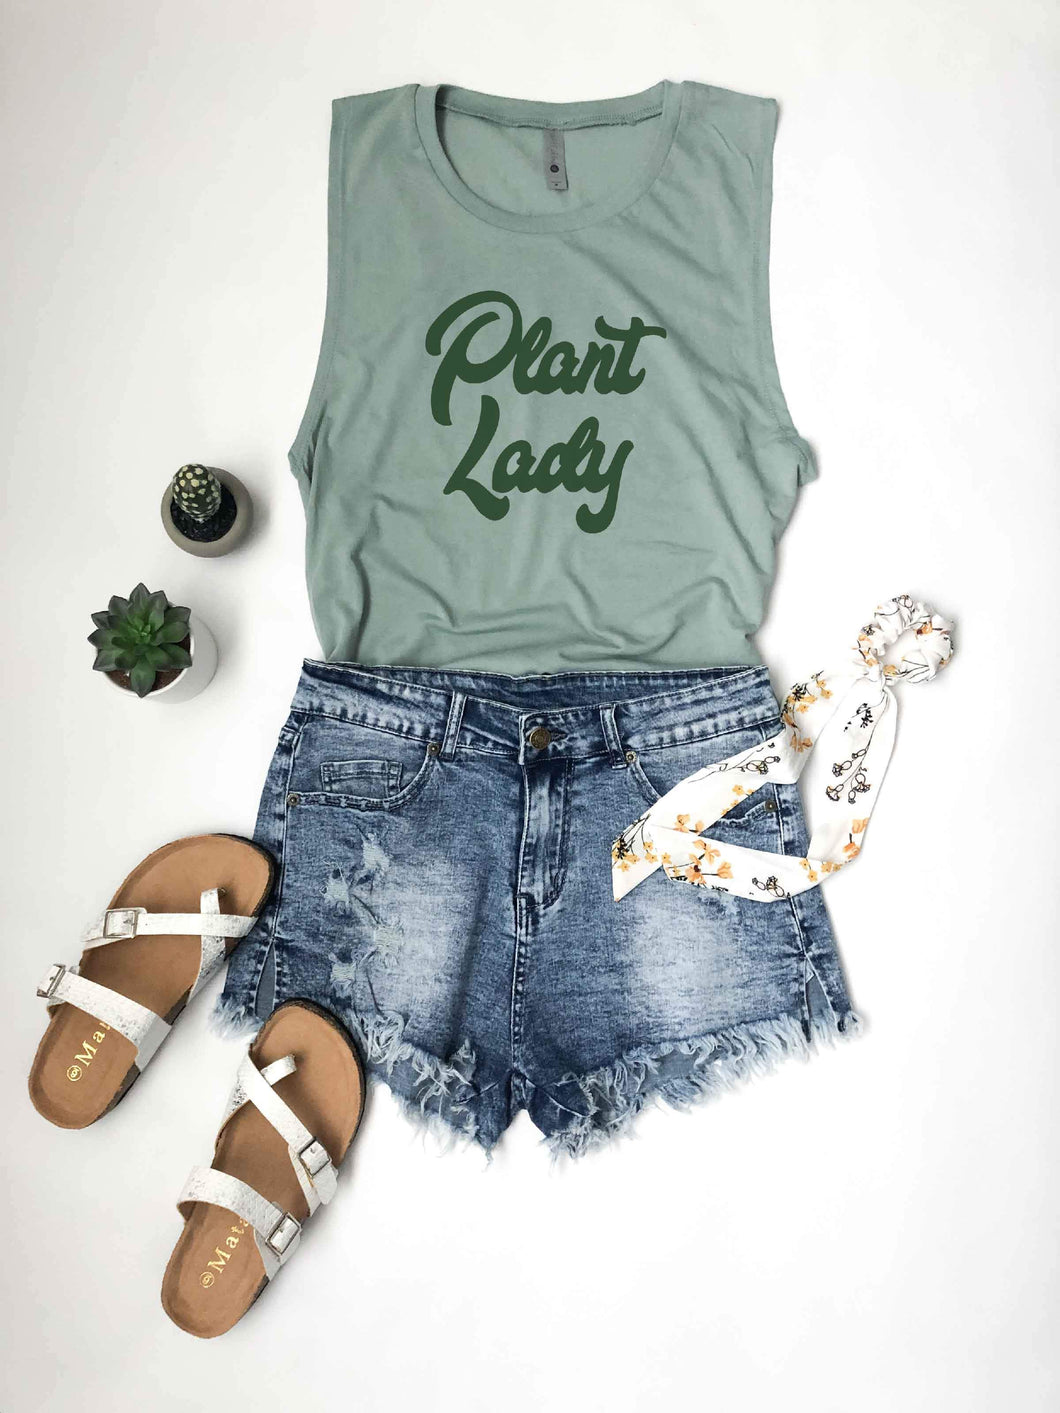 Plant lady unisex muscle tank Short sleeve miscellaneous tee Next level sage green unisex muscle tank